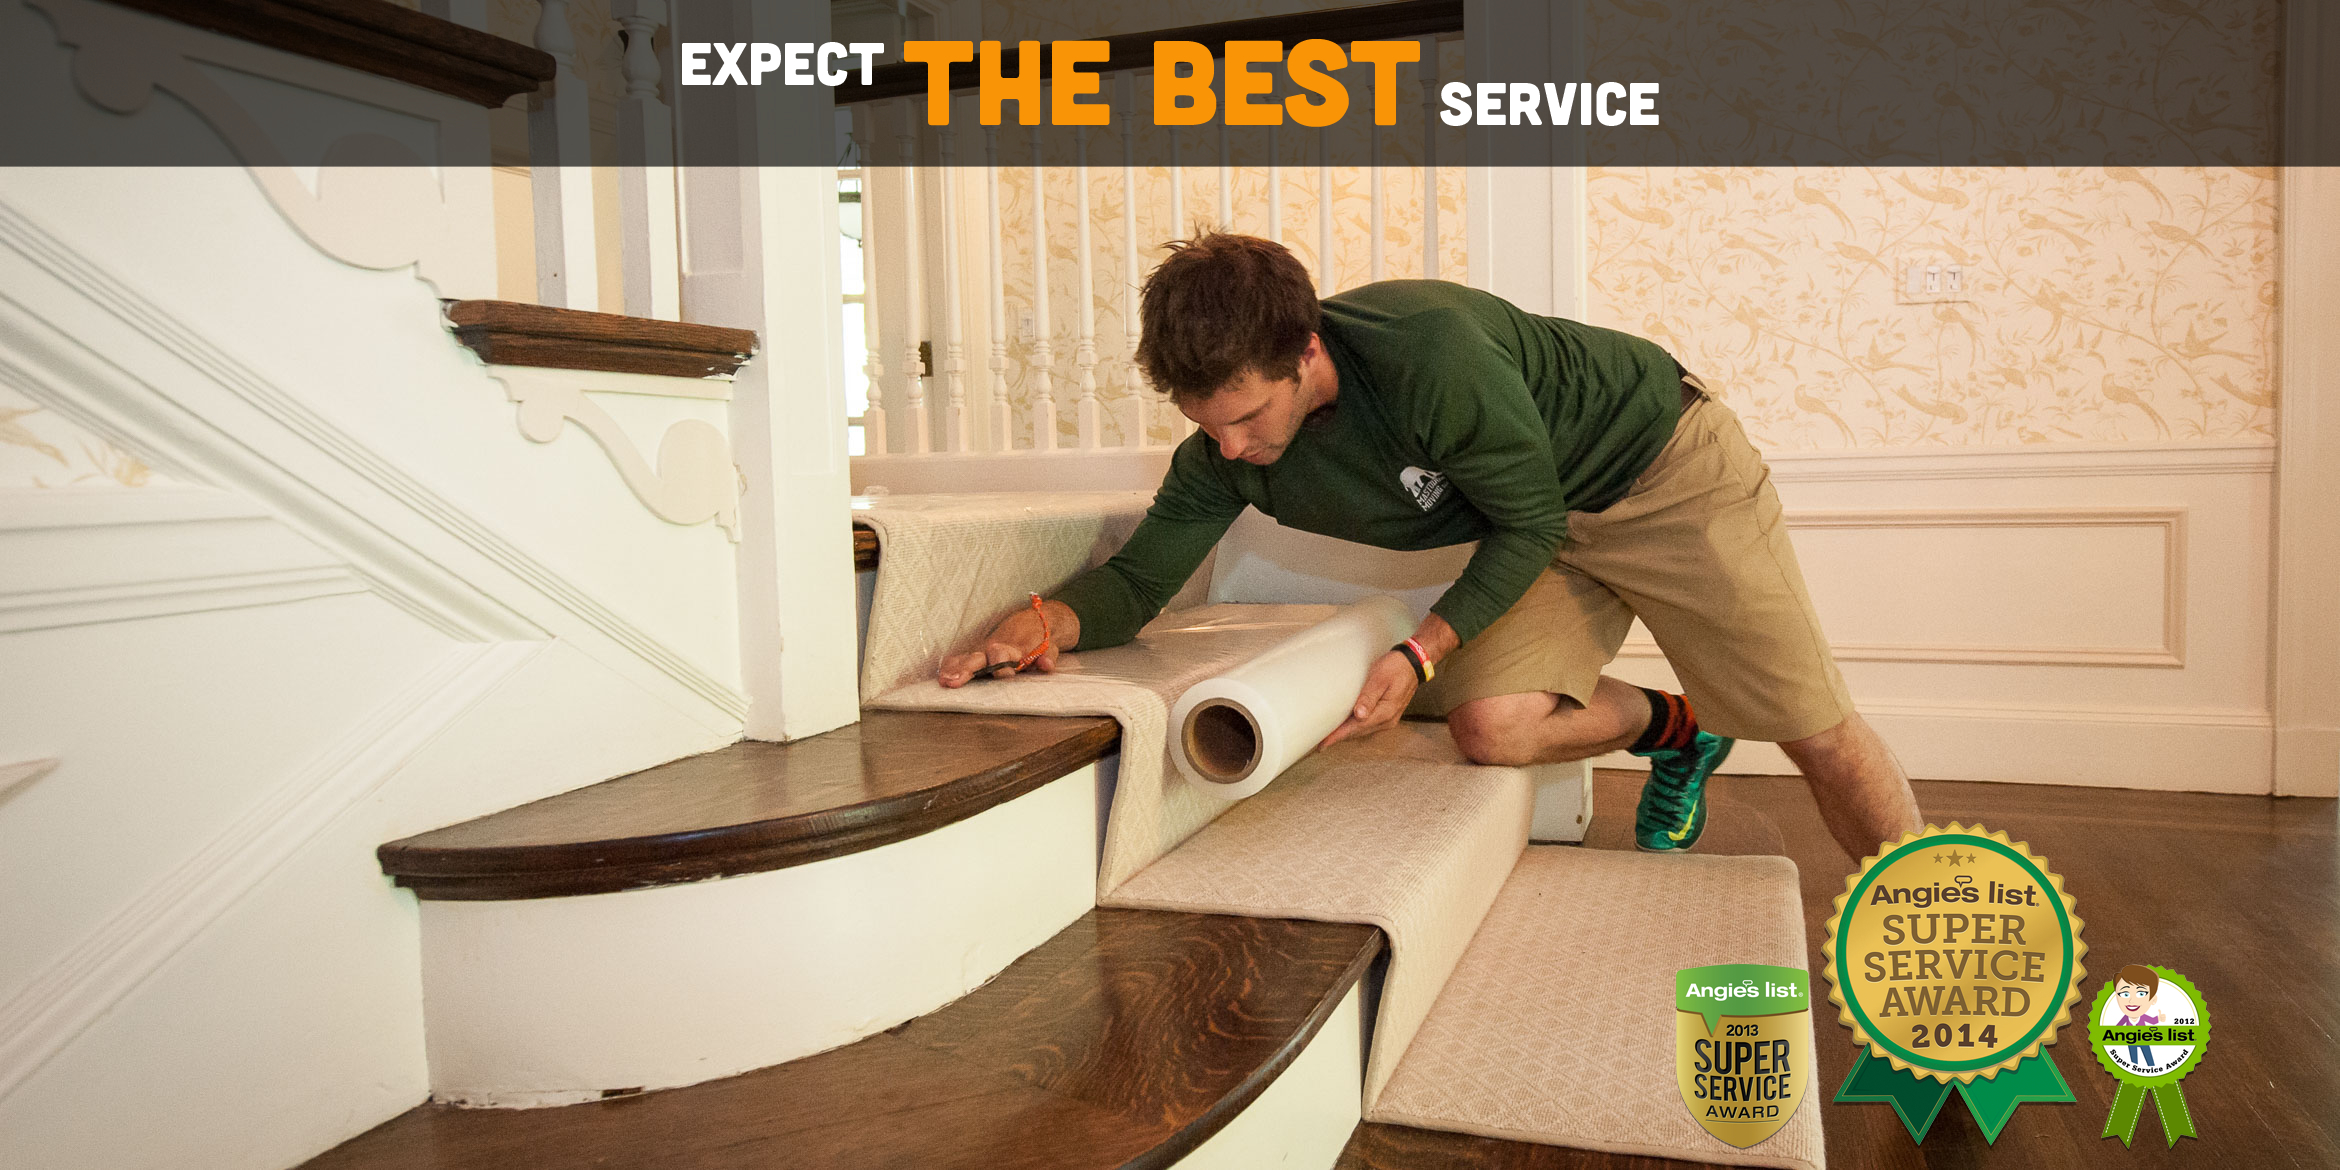 Expect The Best Service